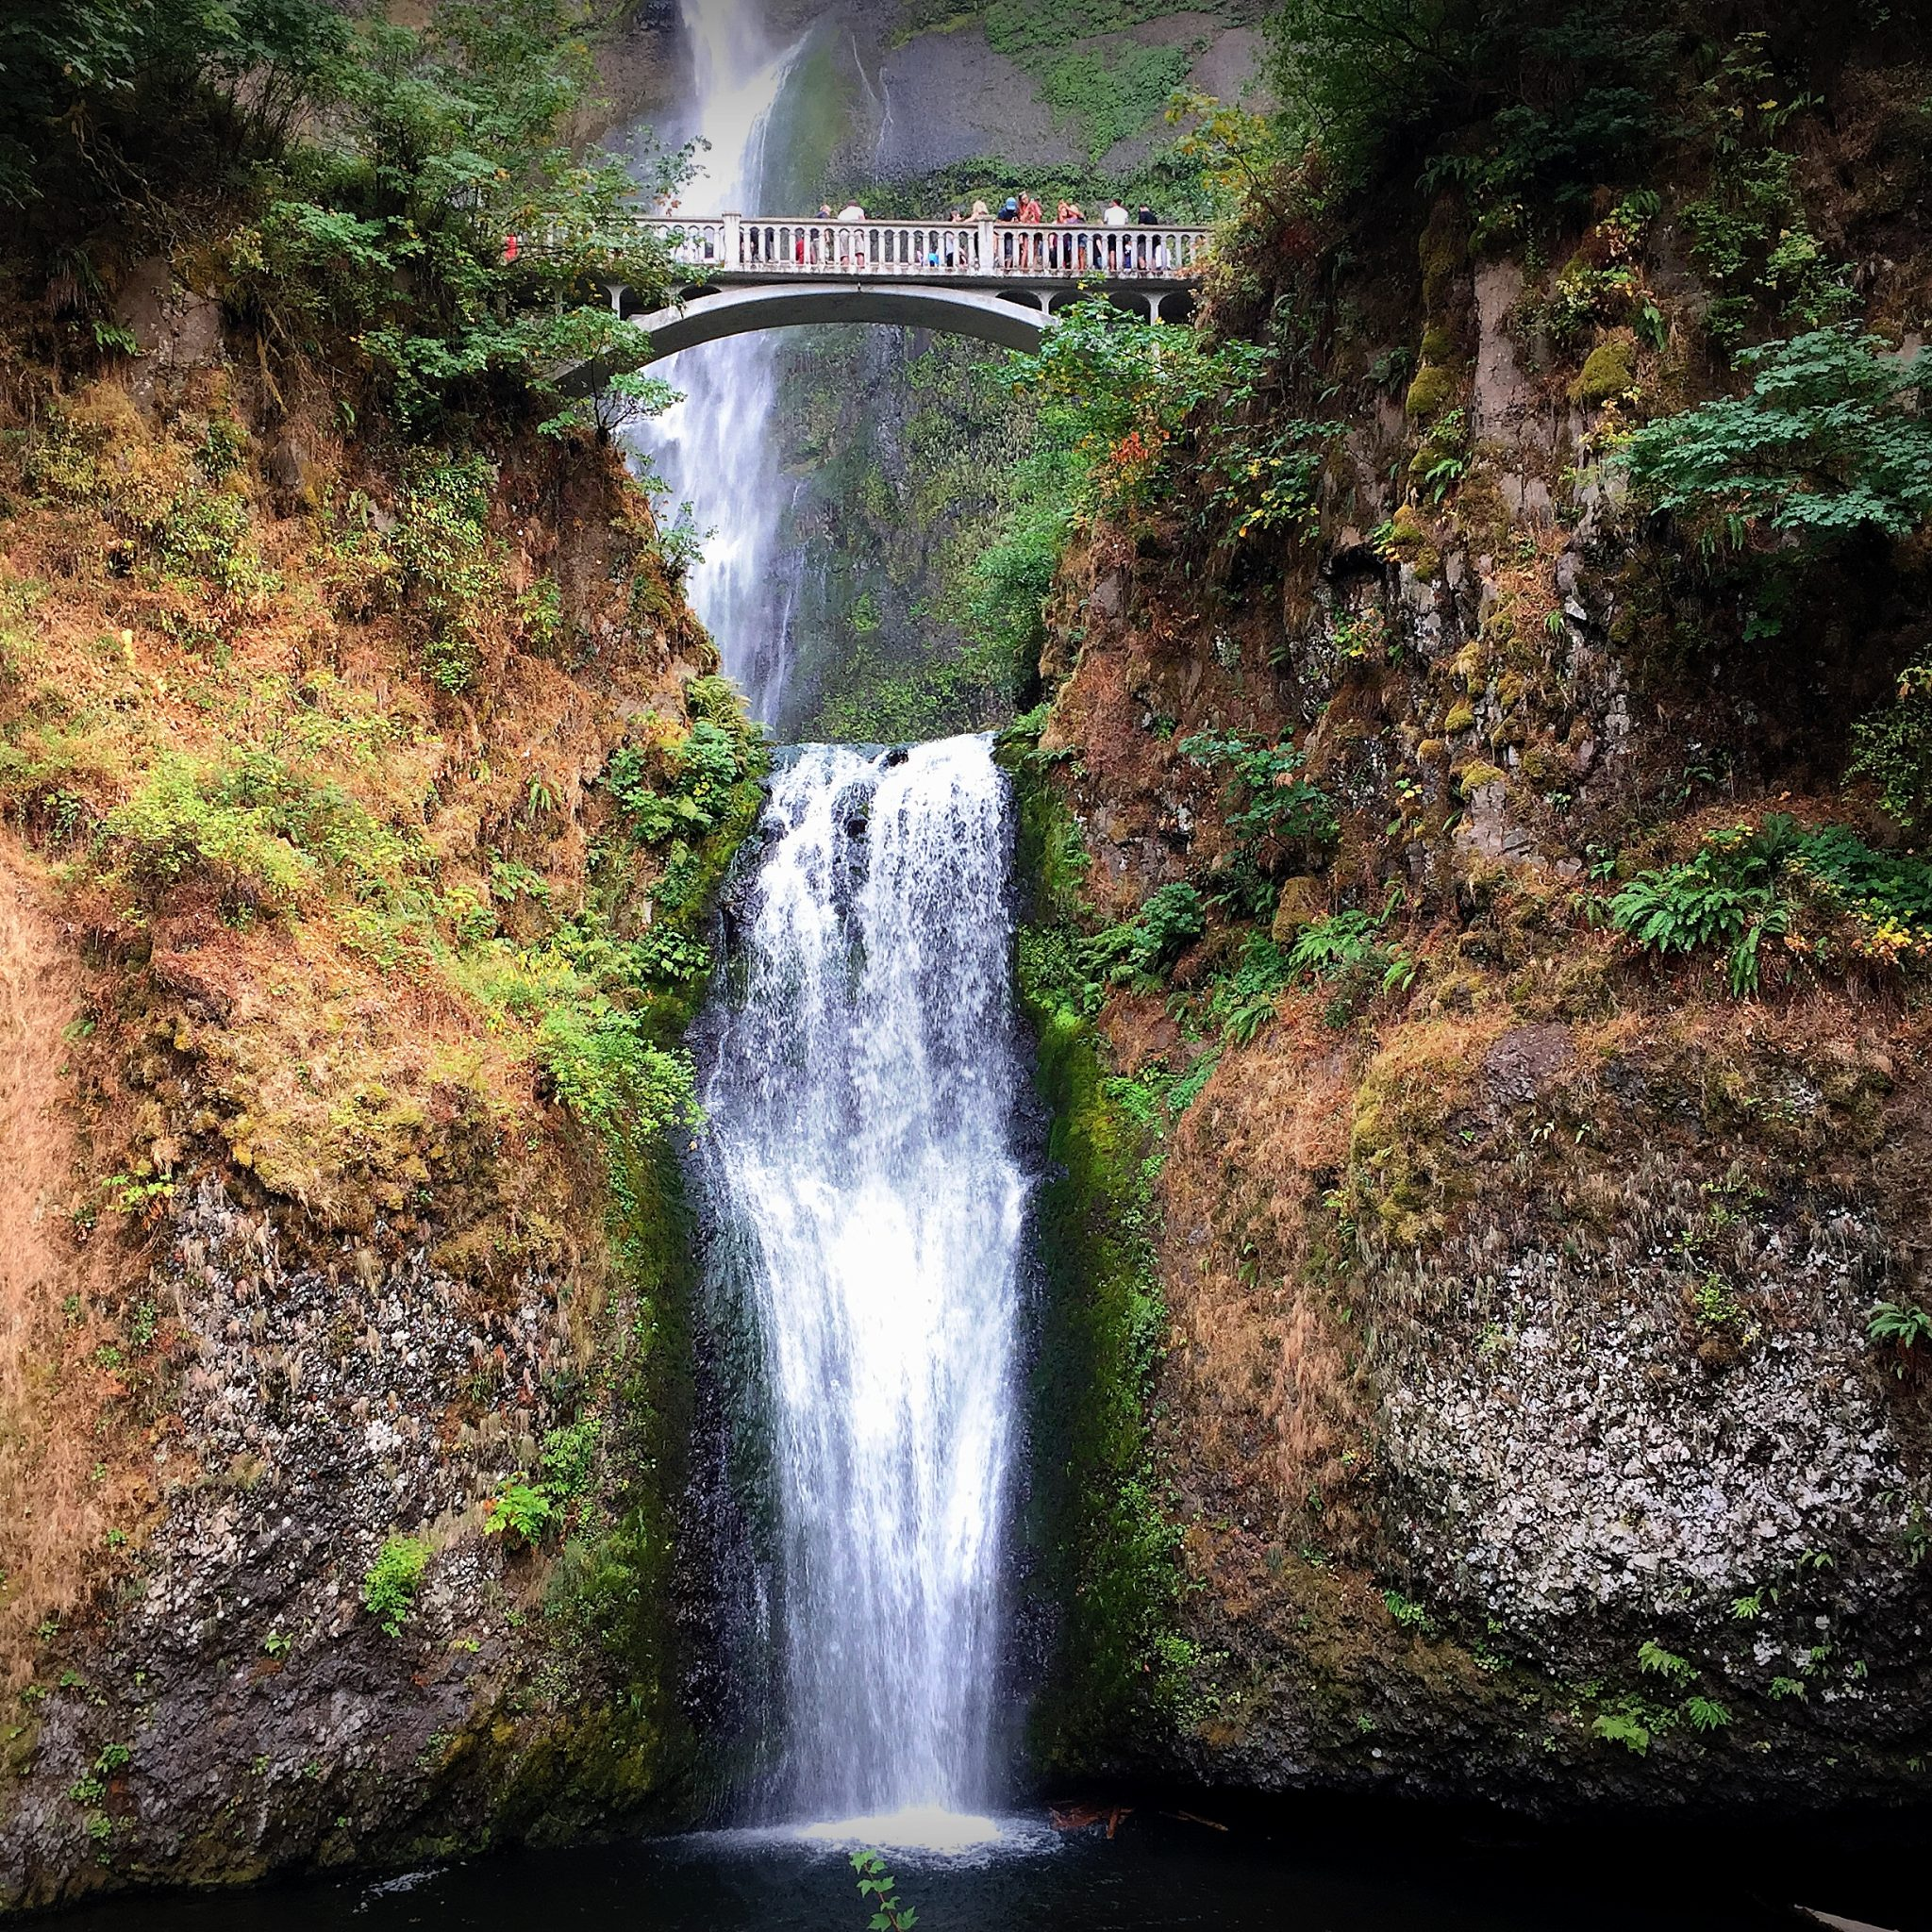 Multnomah Falls is by far the locals and visitors' favorite stop along Columbia River Gorge.